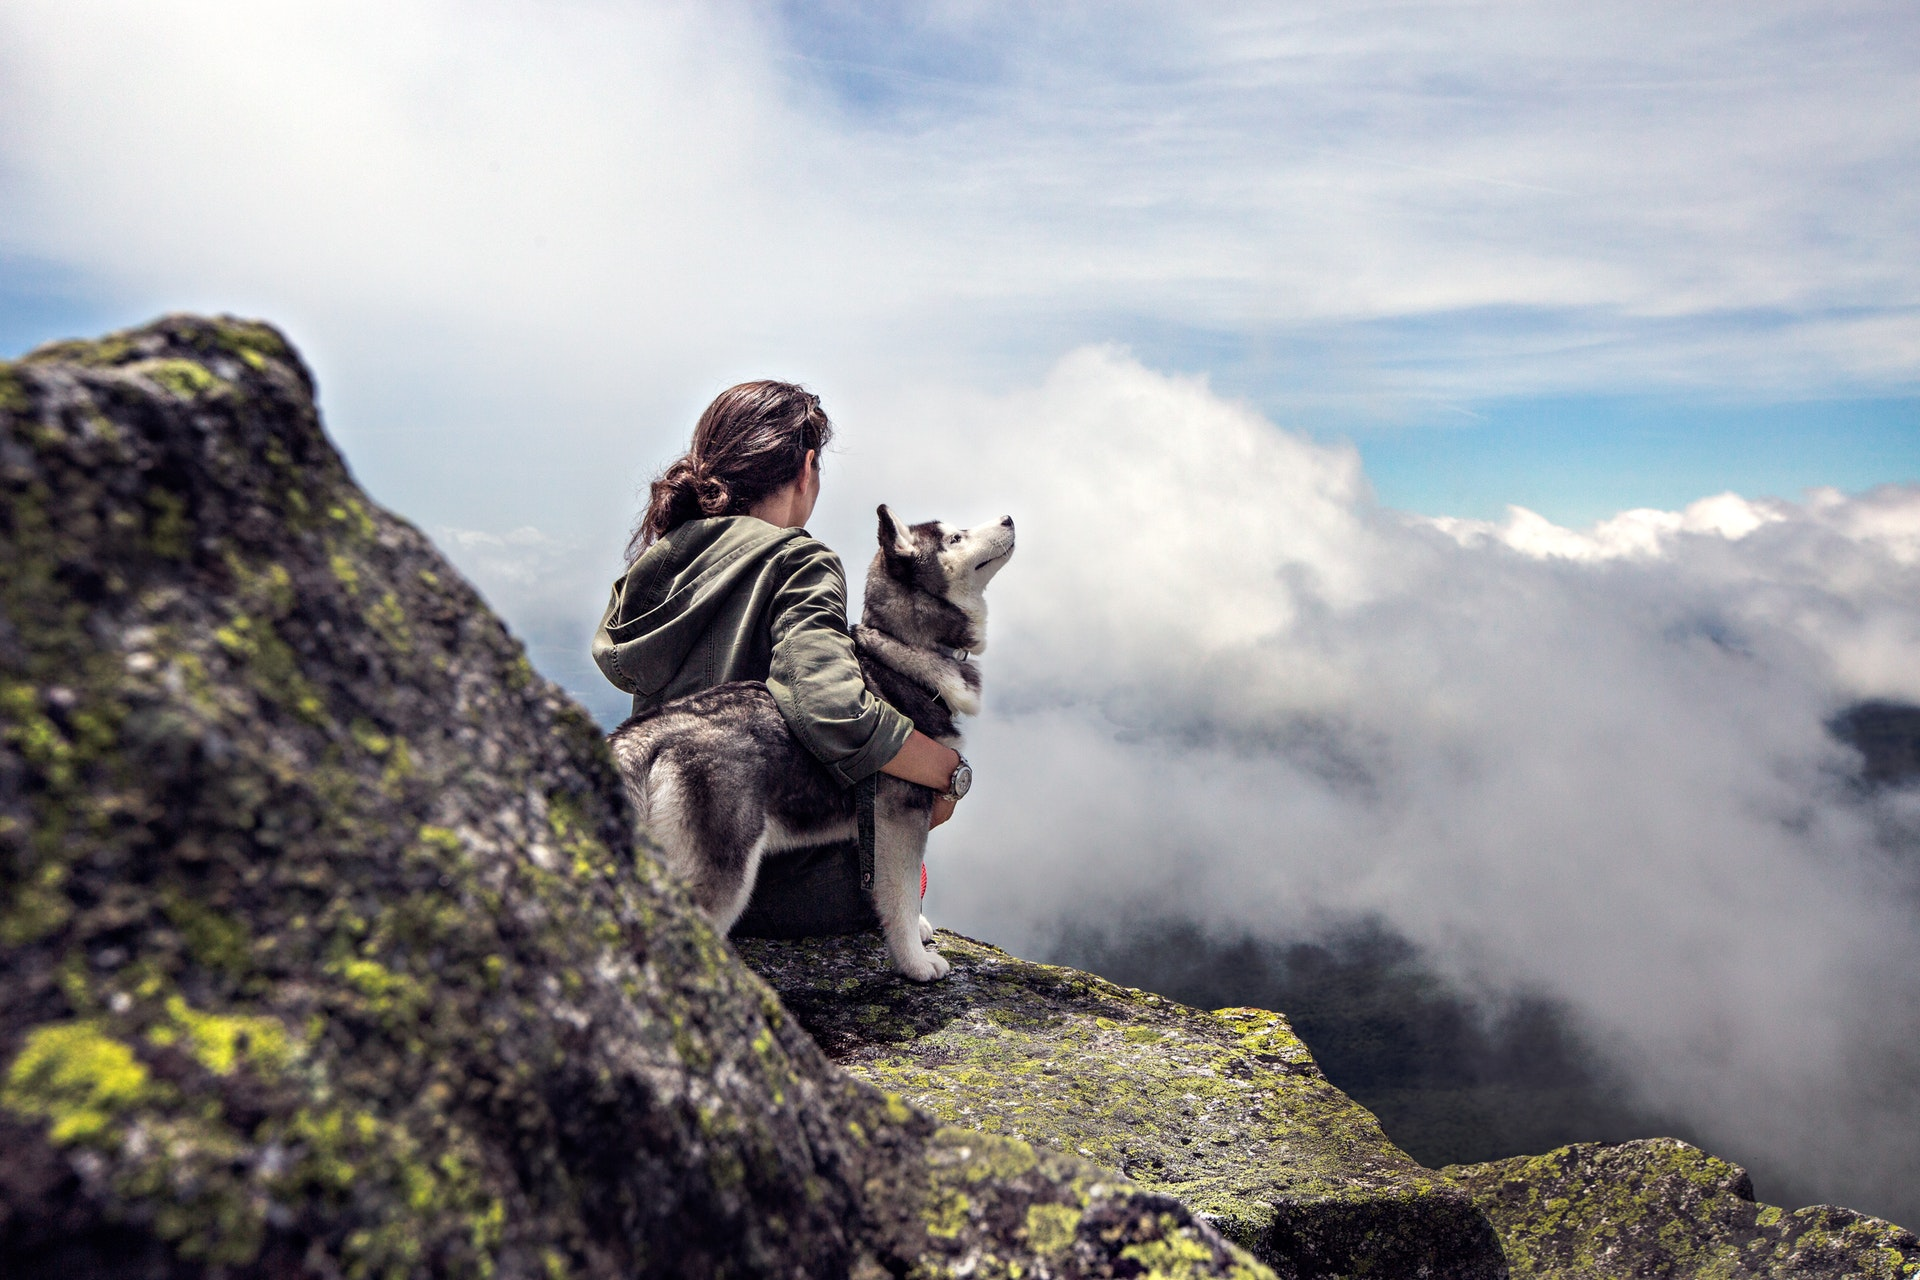 A Guide To Hiking and Dog Care On The Trail